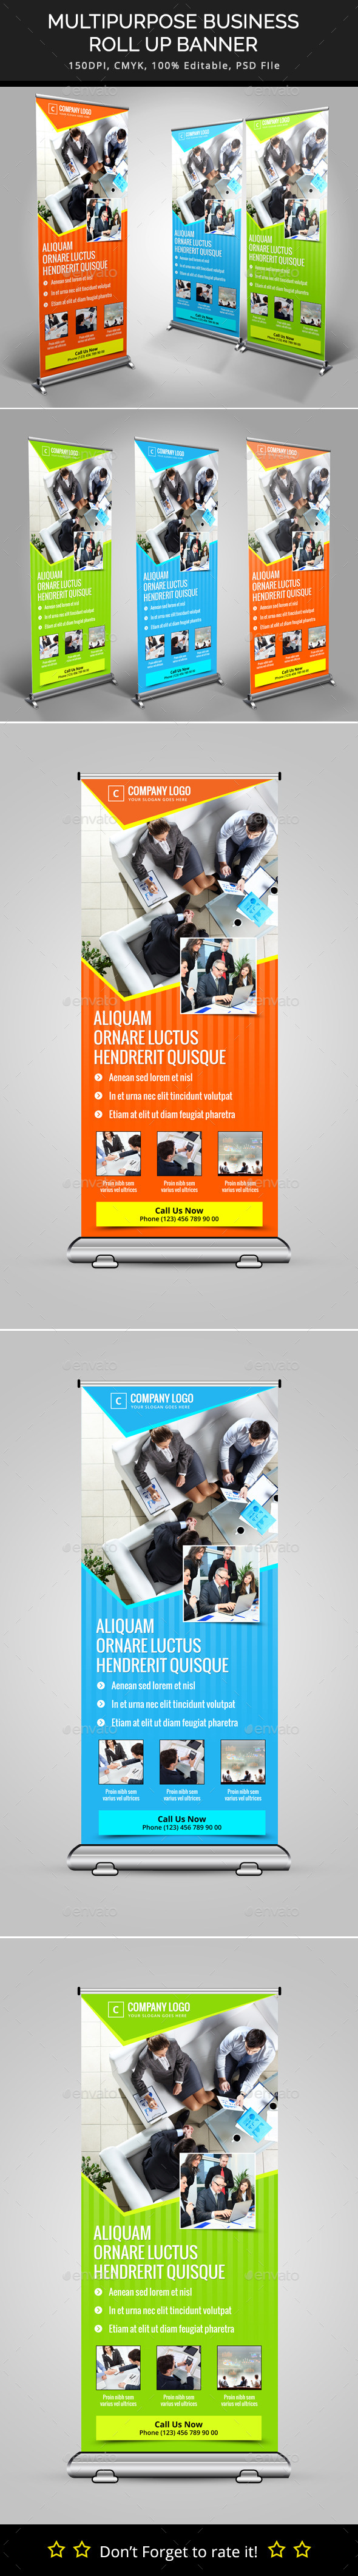 GraphicRiver Multipurpose Business Roll Up Banner 10224533